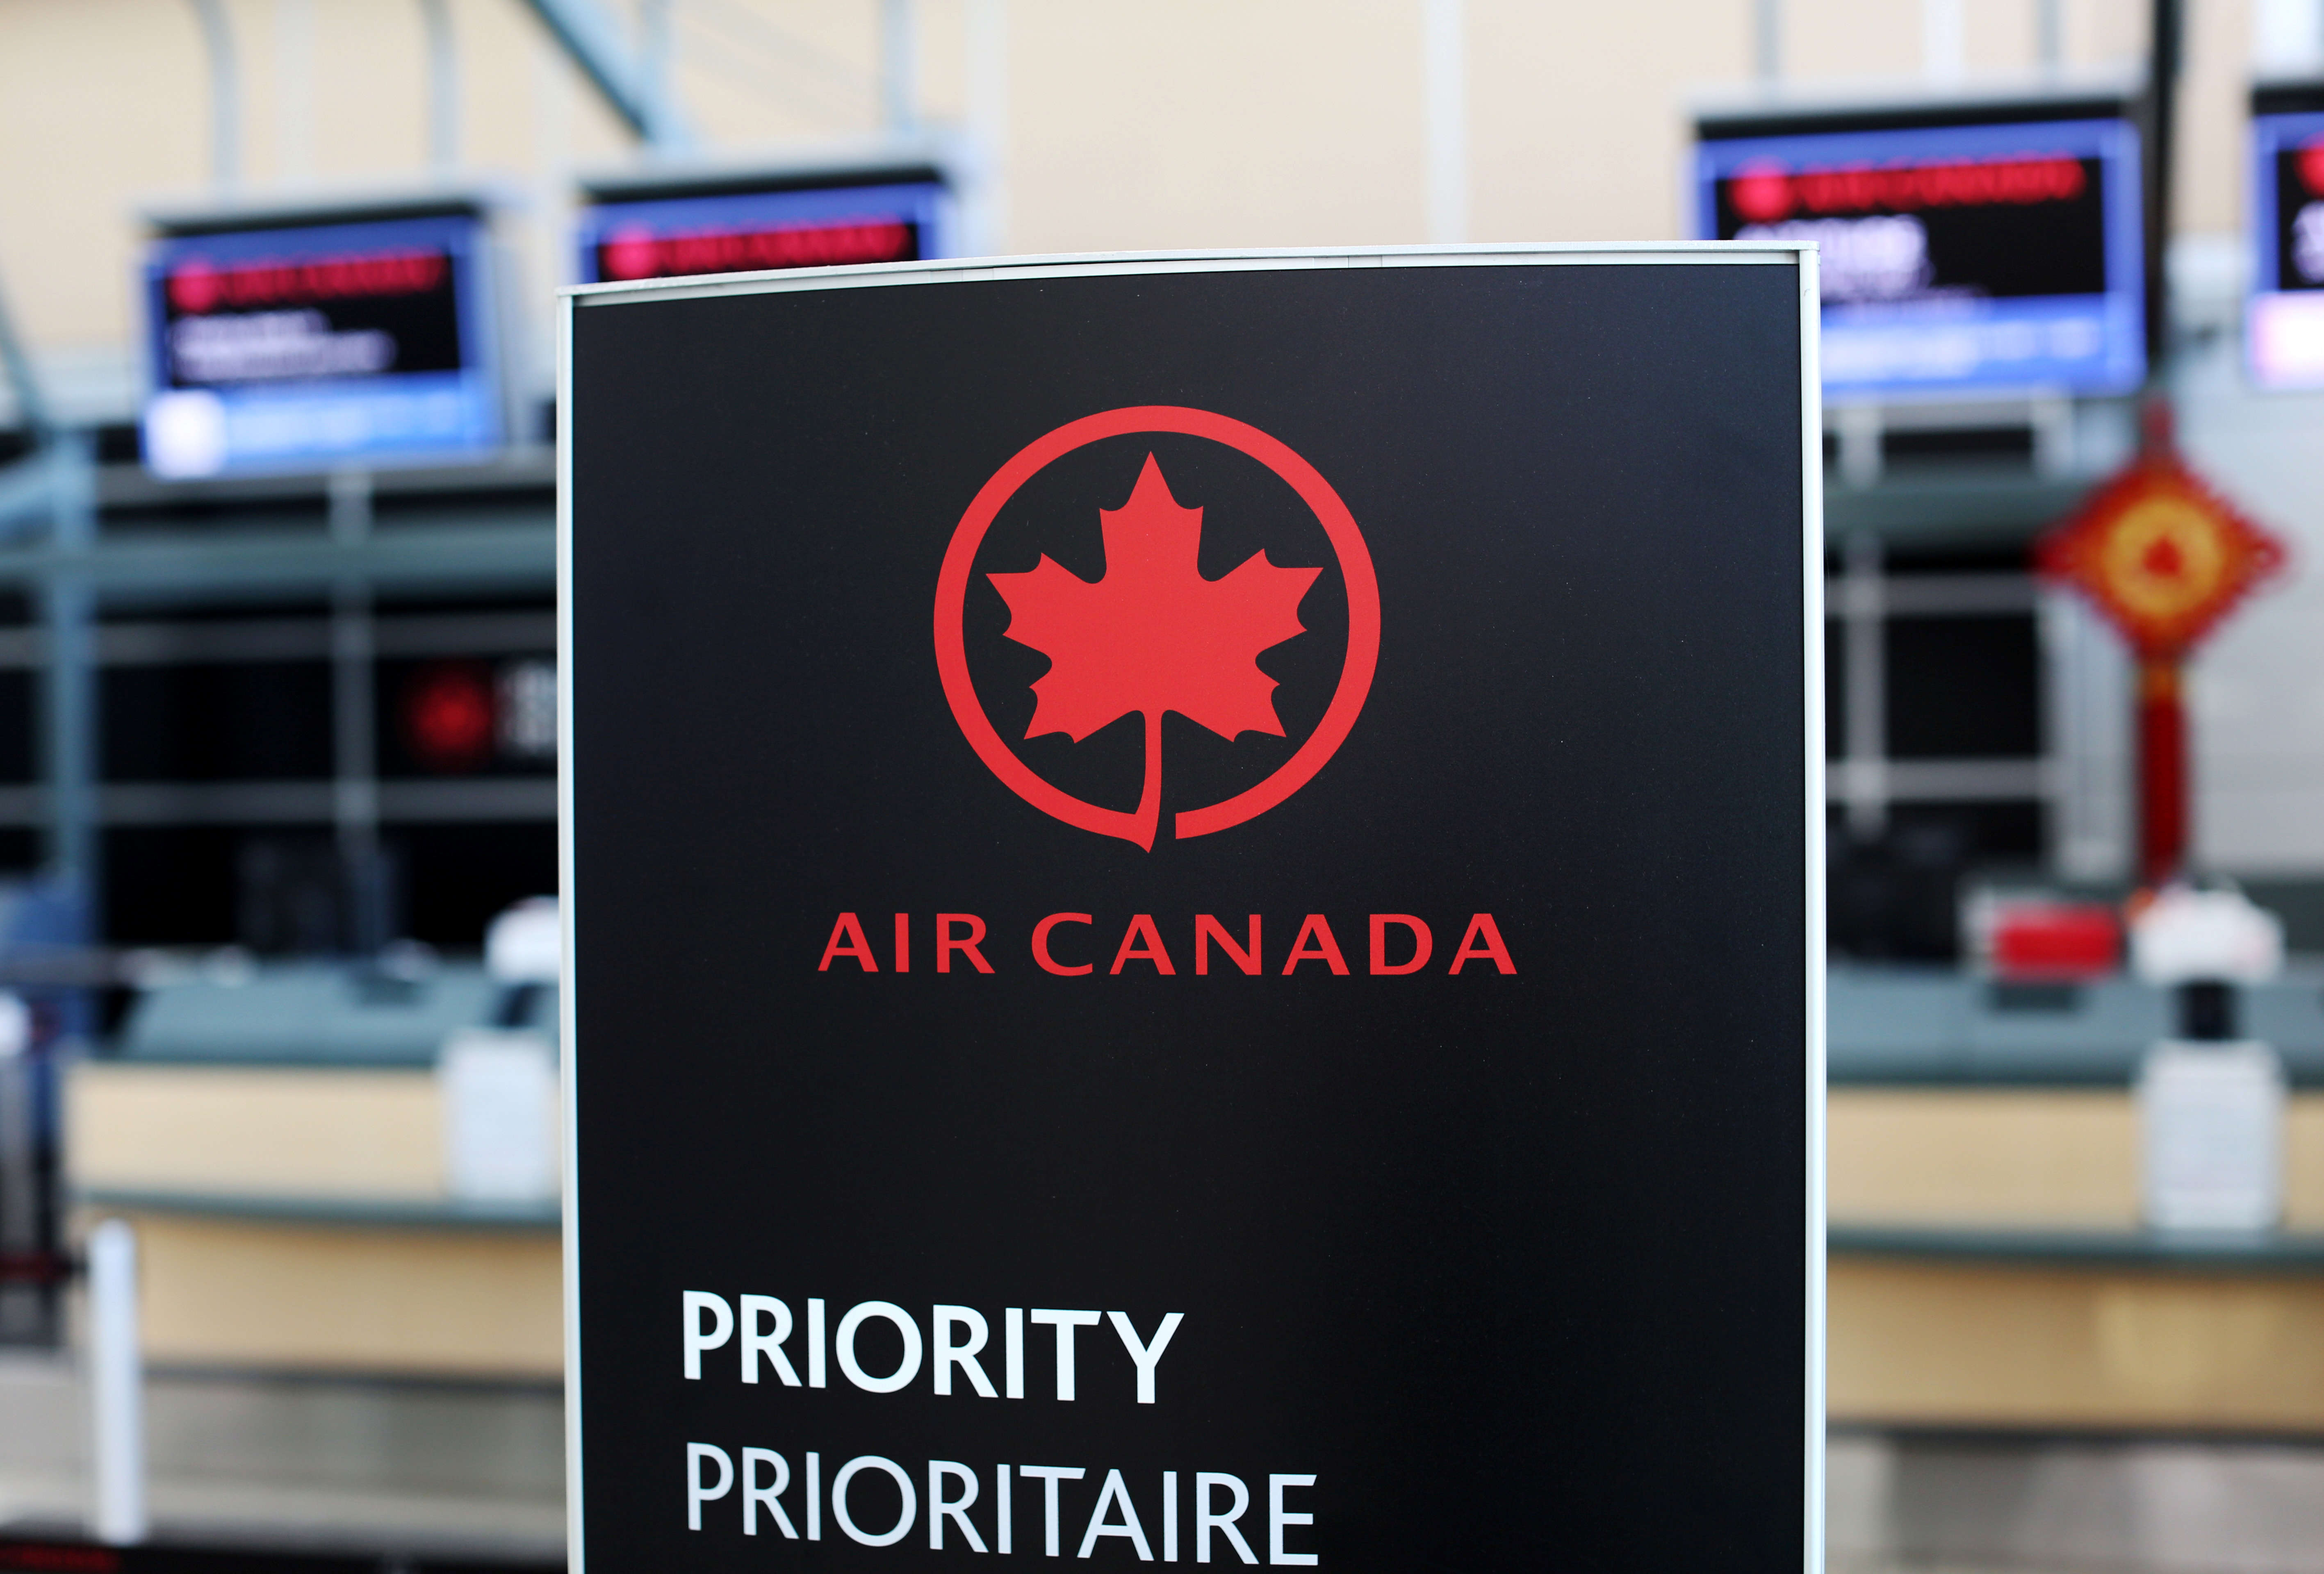 Air Canada signage is pictured at Vancouver's international airport in Richmond, British Columbia, Canada, February 5, 2019.  REUTERS/Ben Nelms